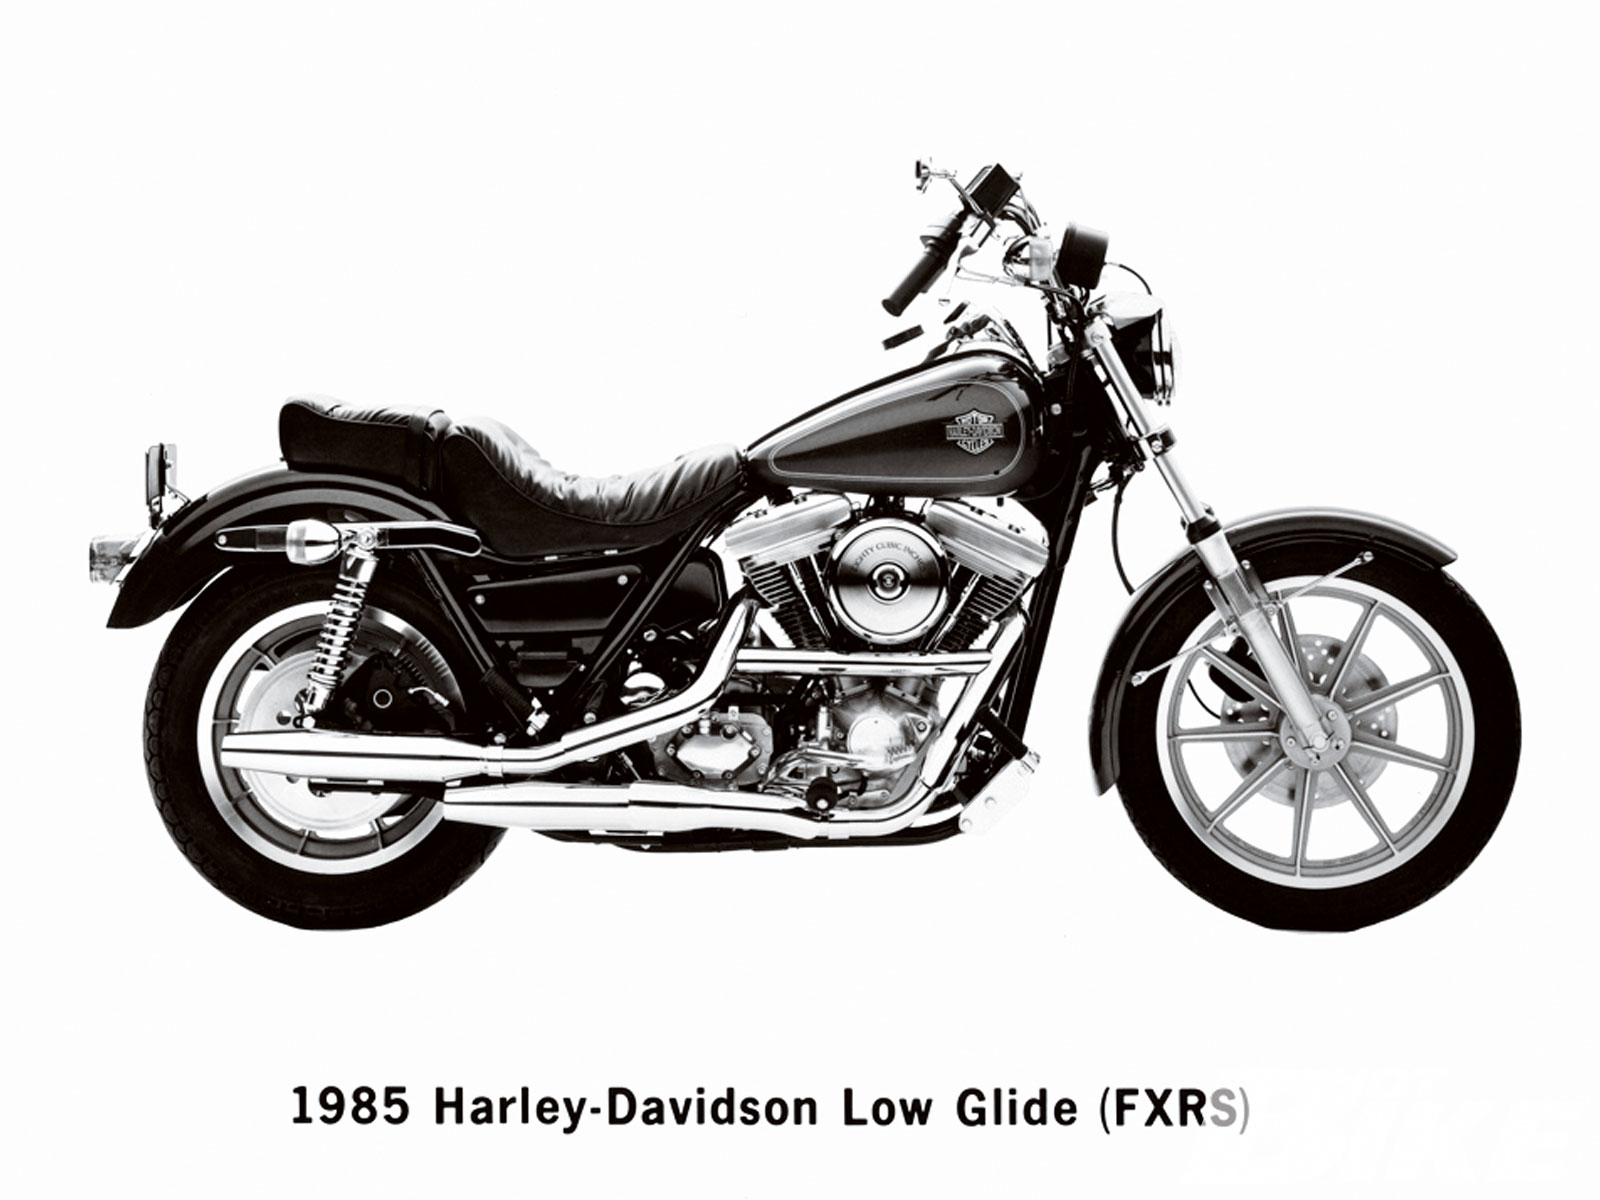 Harley Davidson Fxr Wiring Diagram For 1990 - Wiring ... on